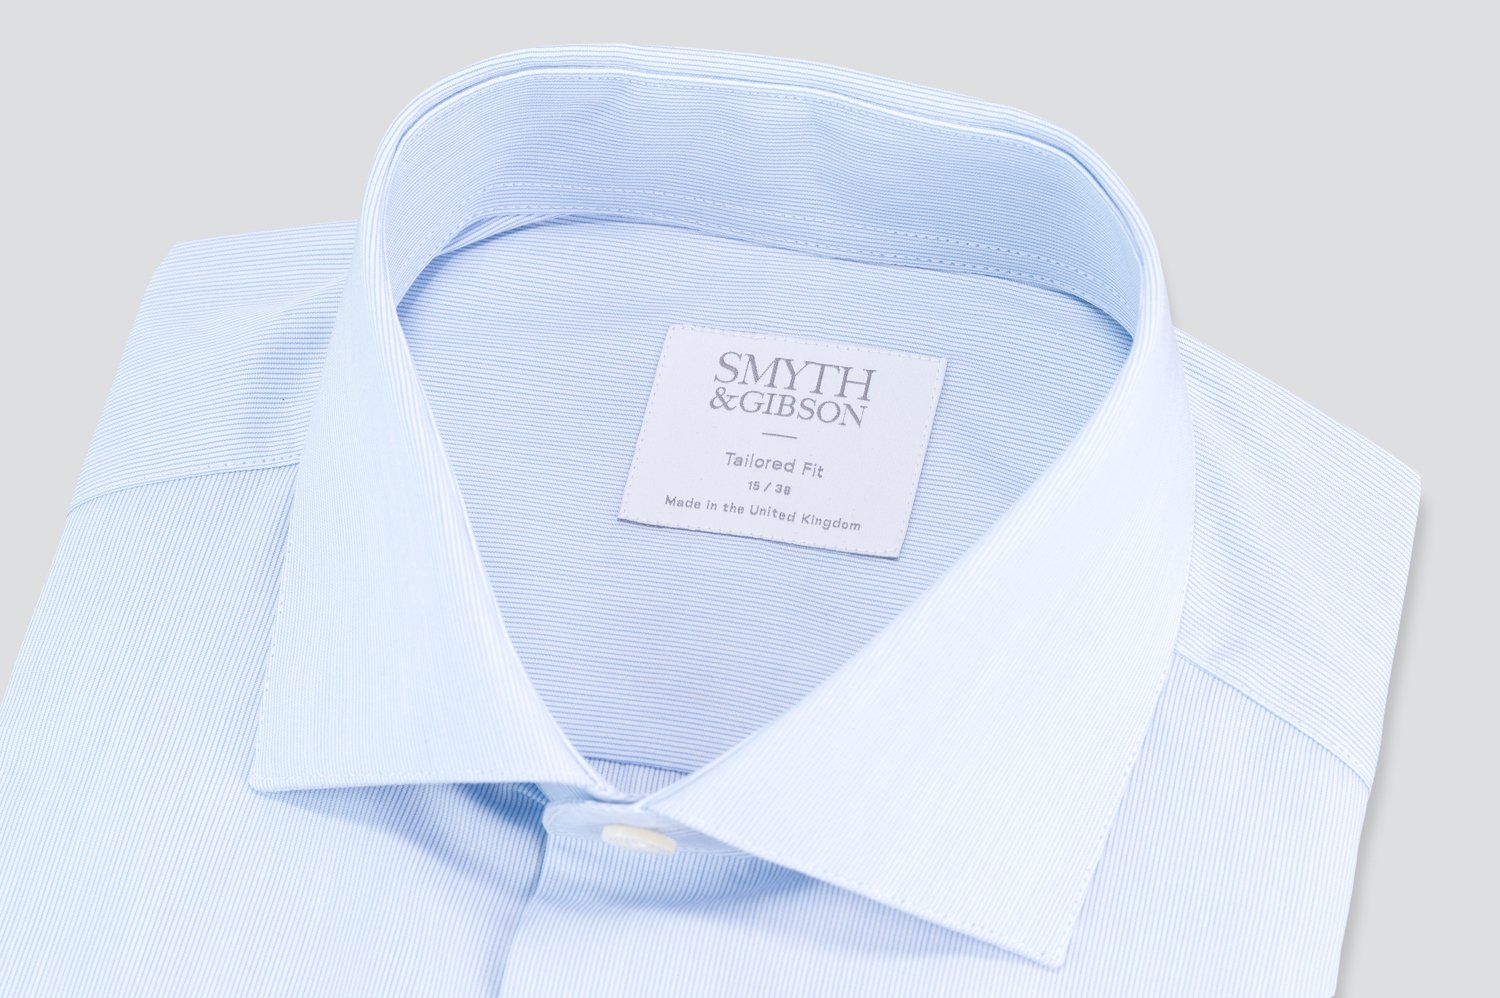 Smyth & Gibson 120 Thread Count Fine Stripe Tailored Fit Shirt in Sky Blue